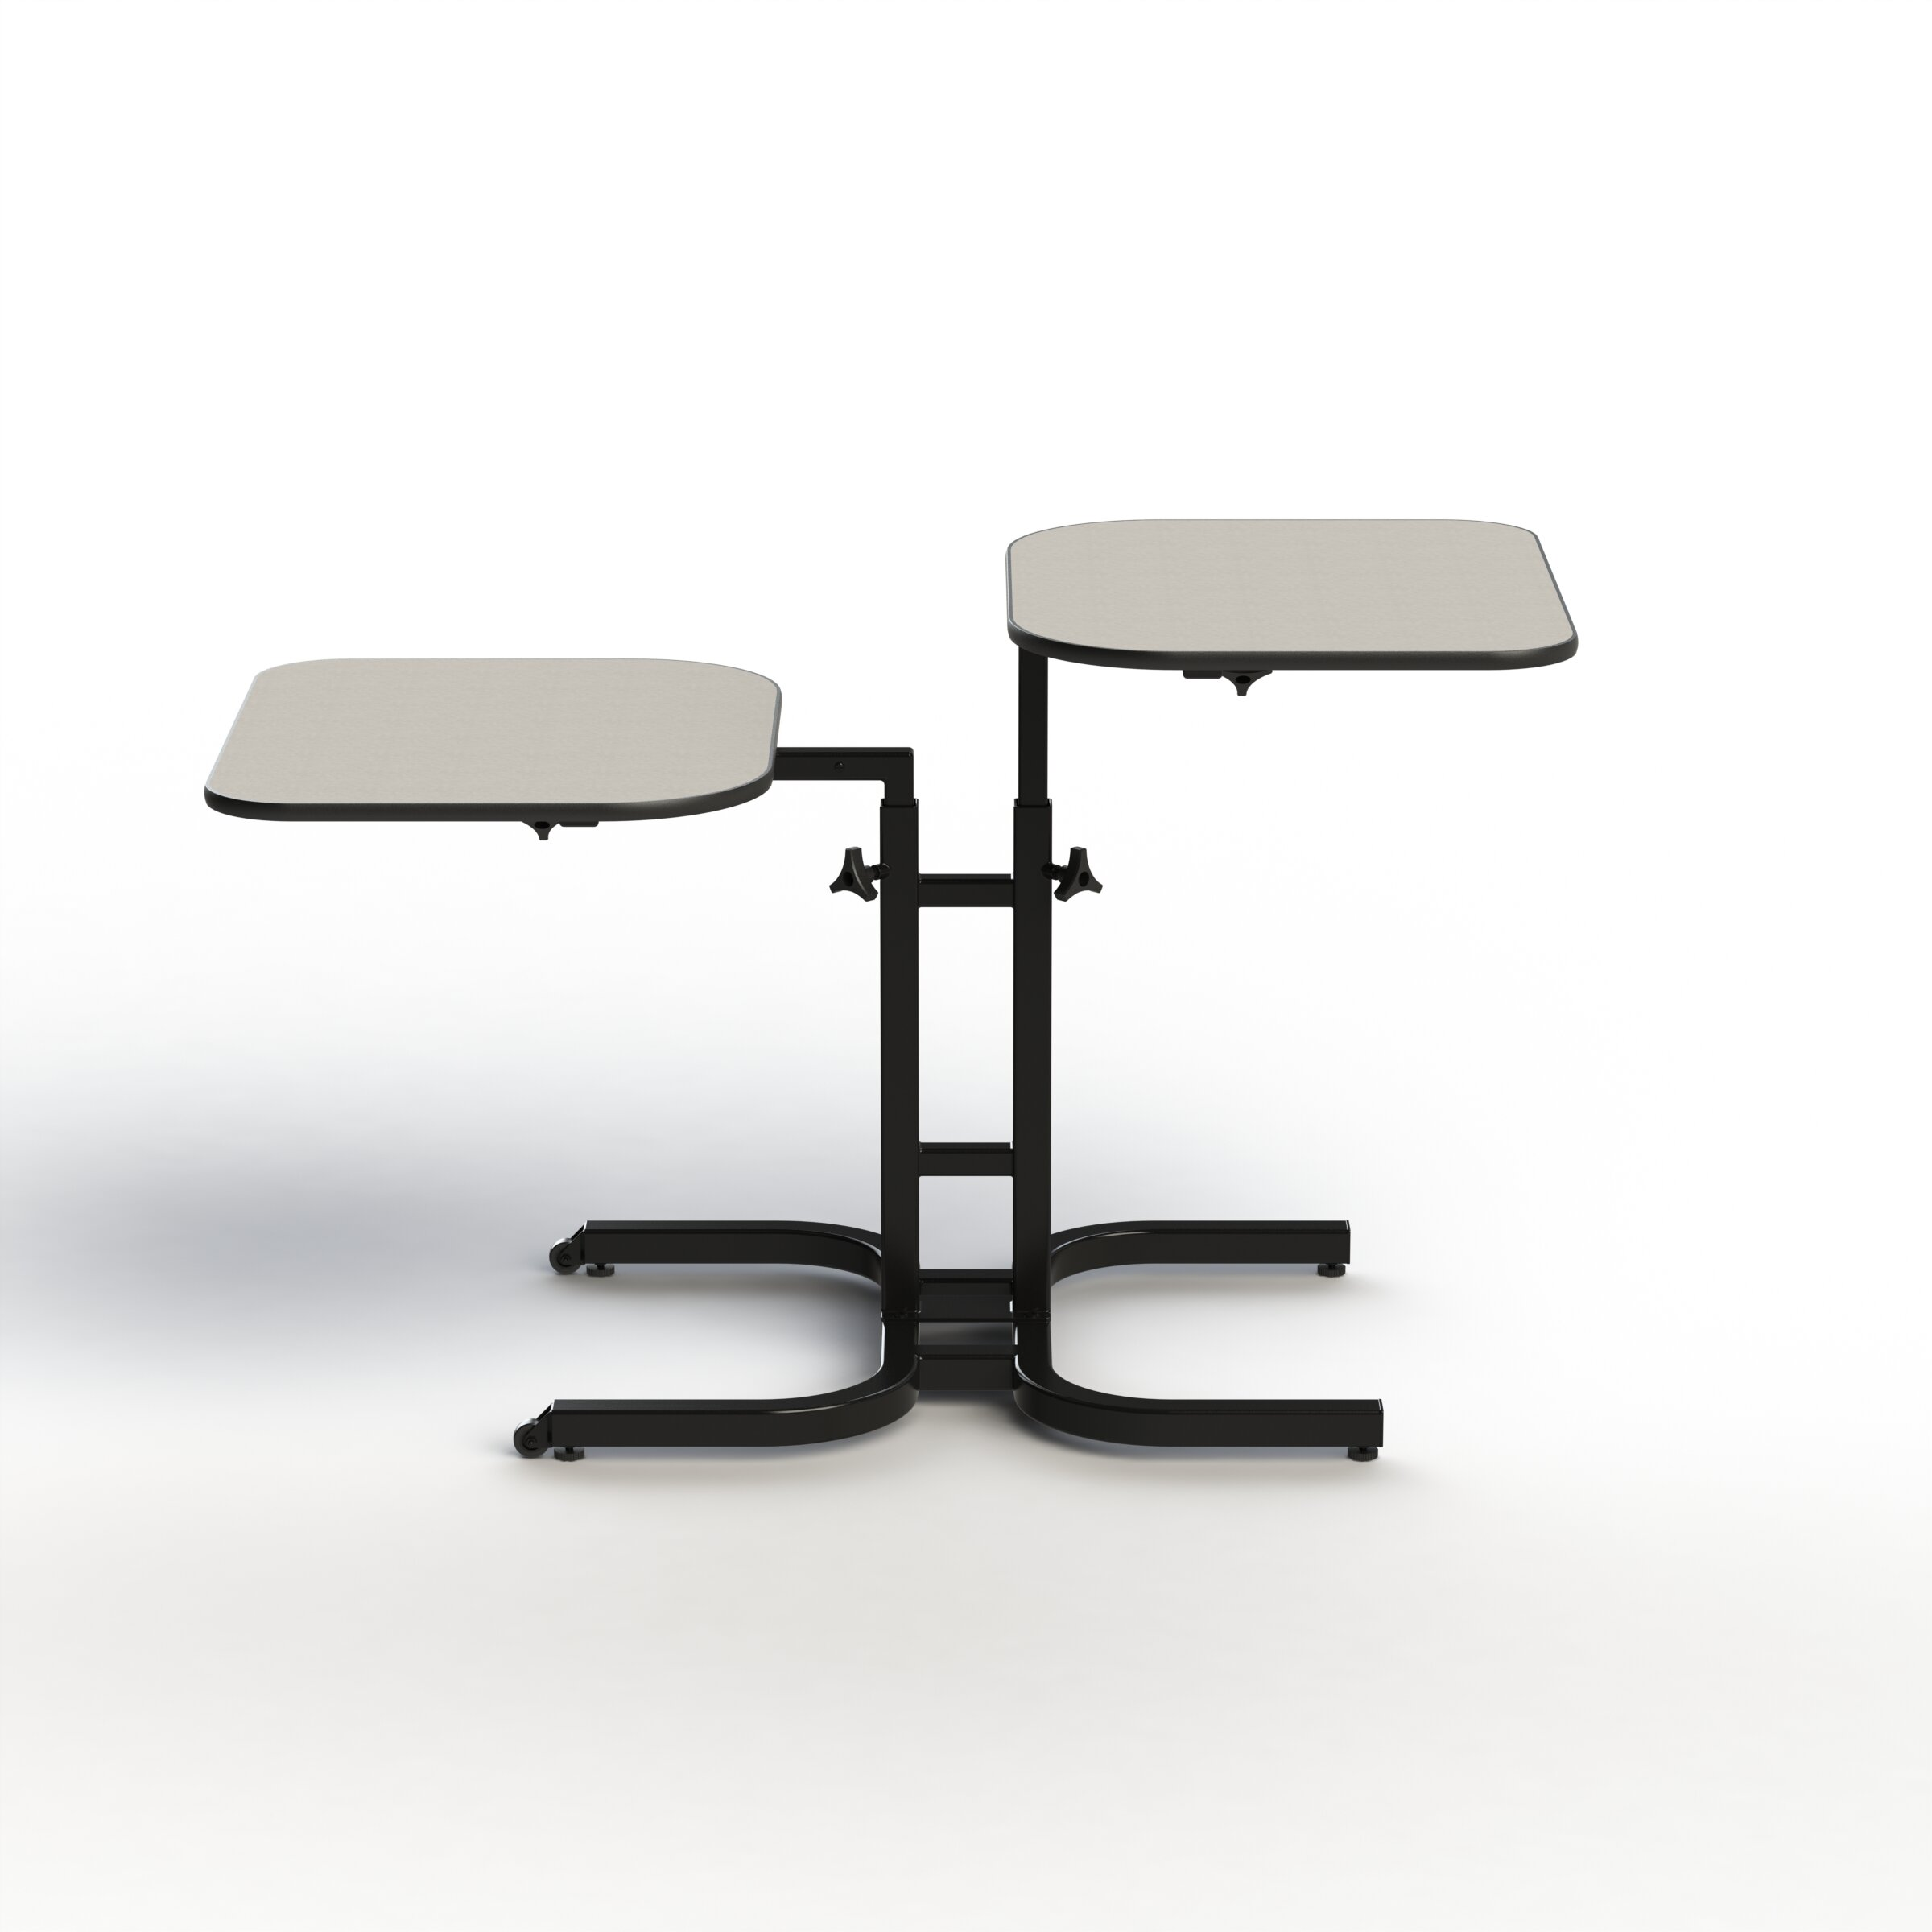 Comfor Tek Seating Butterfly Wheelchair Accessible  : Comfor Tek Seating Butterfly Wheelchair Accessible Extendable Dining Table from www.wayfair.ca size 2400 x 2400 jpeg 106kB